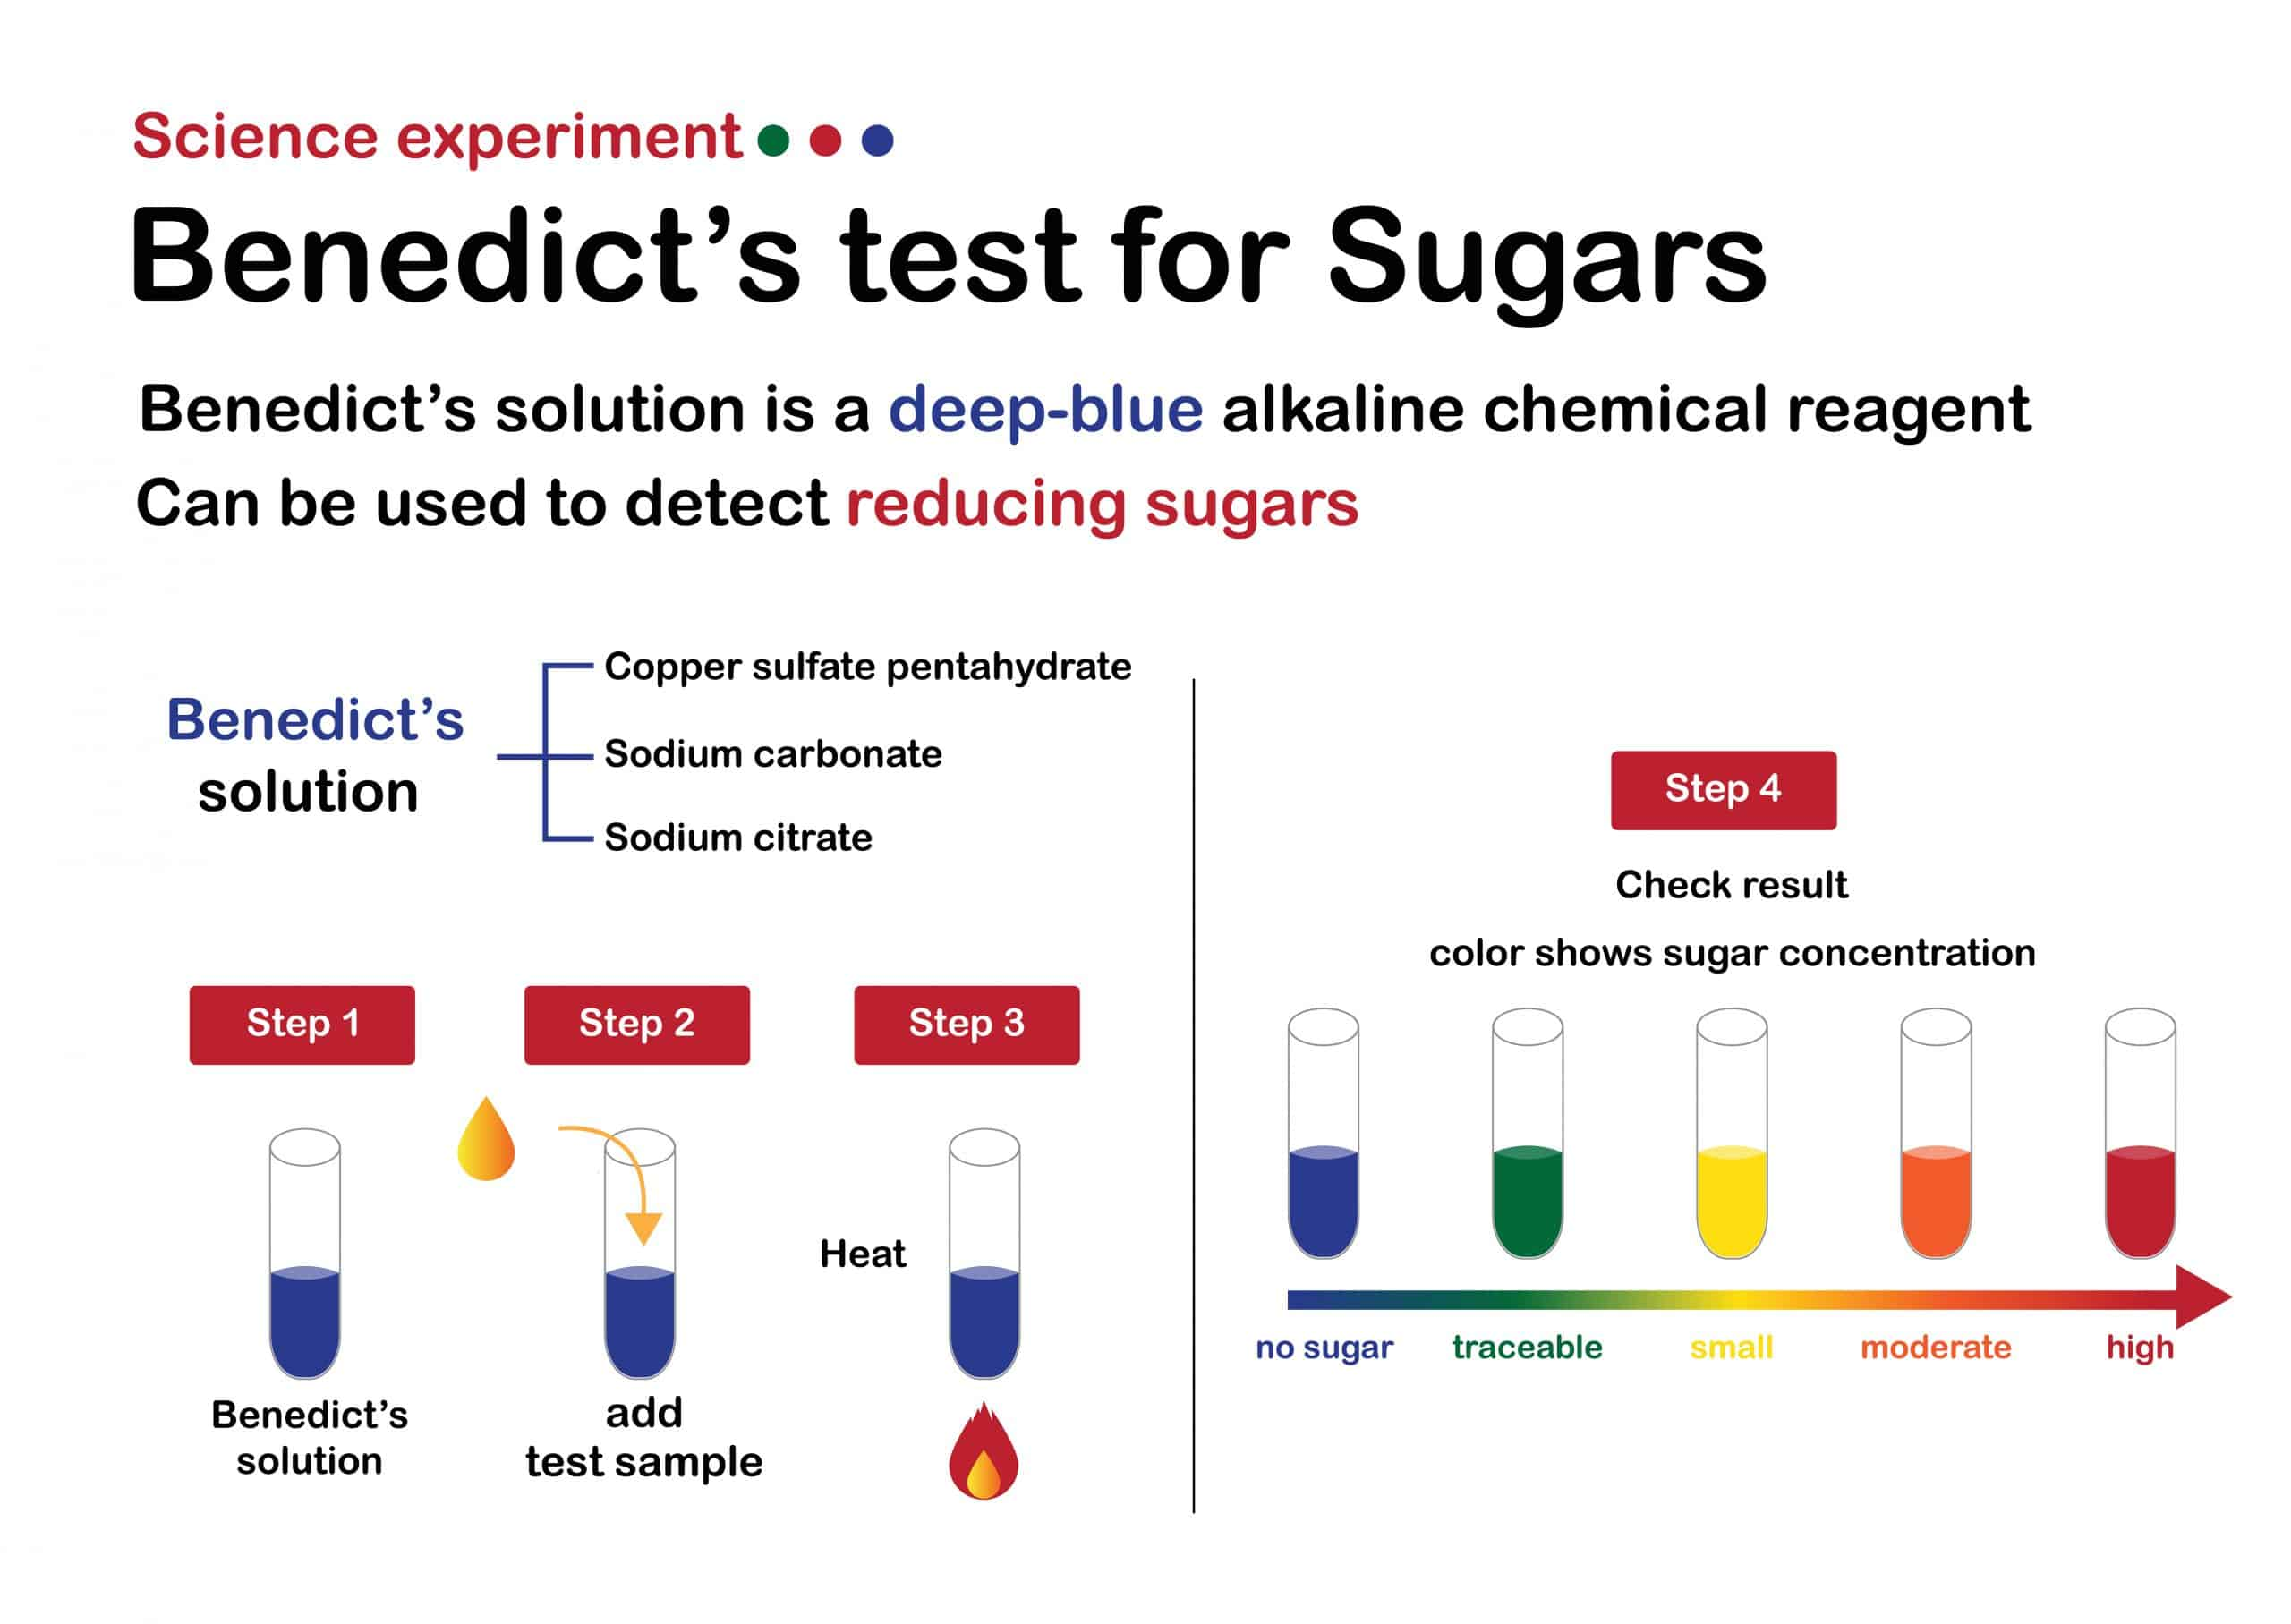 Science experiment diagram show Benedict's test for sugar determination with result analysis.